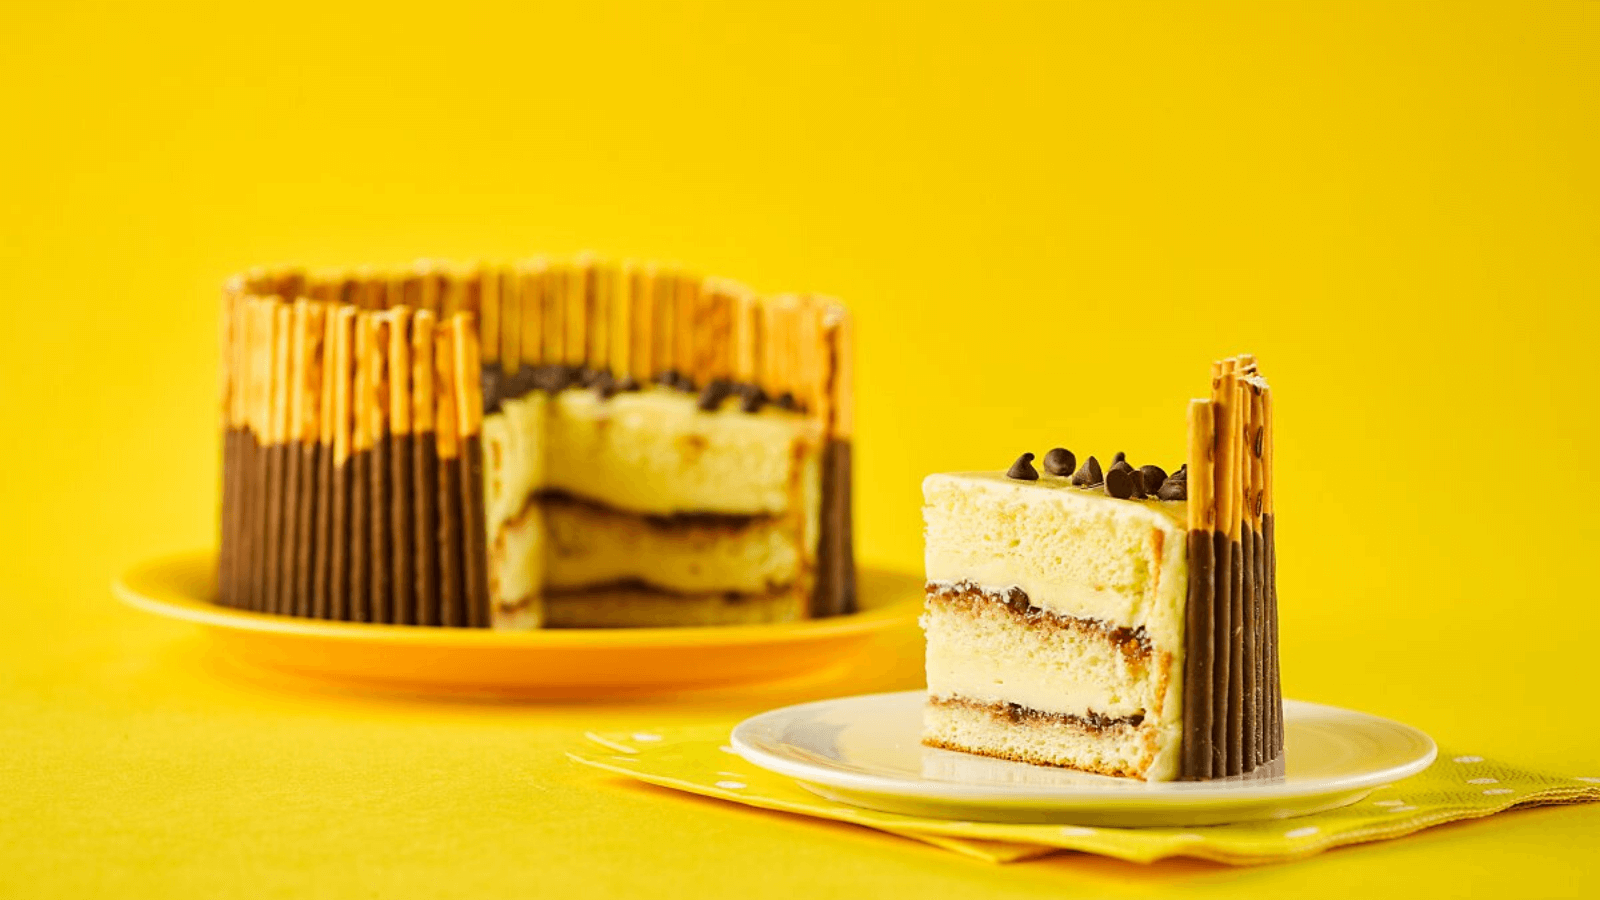 Pepero cake yellow background